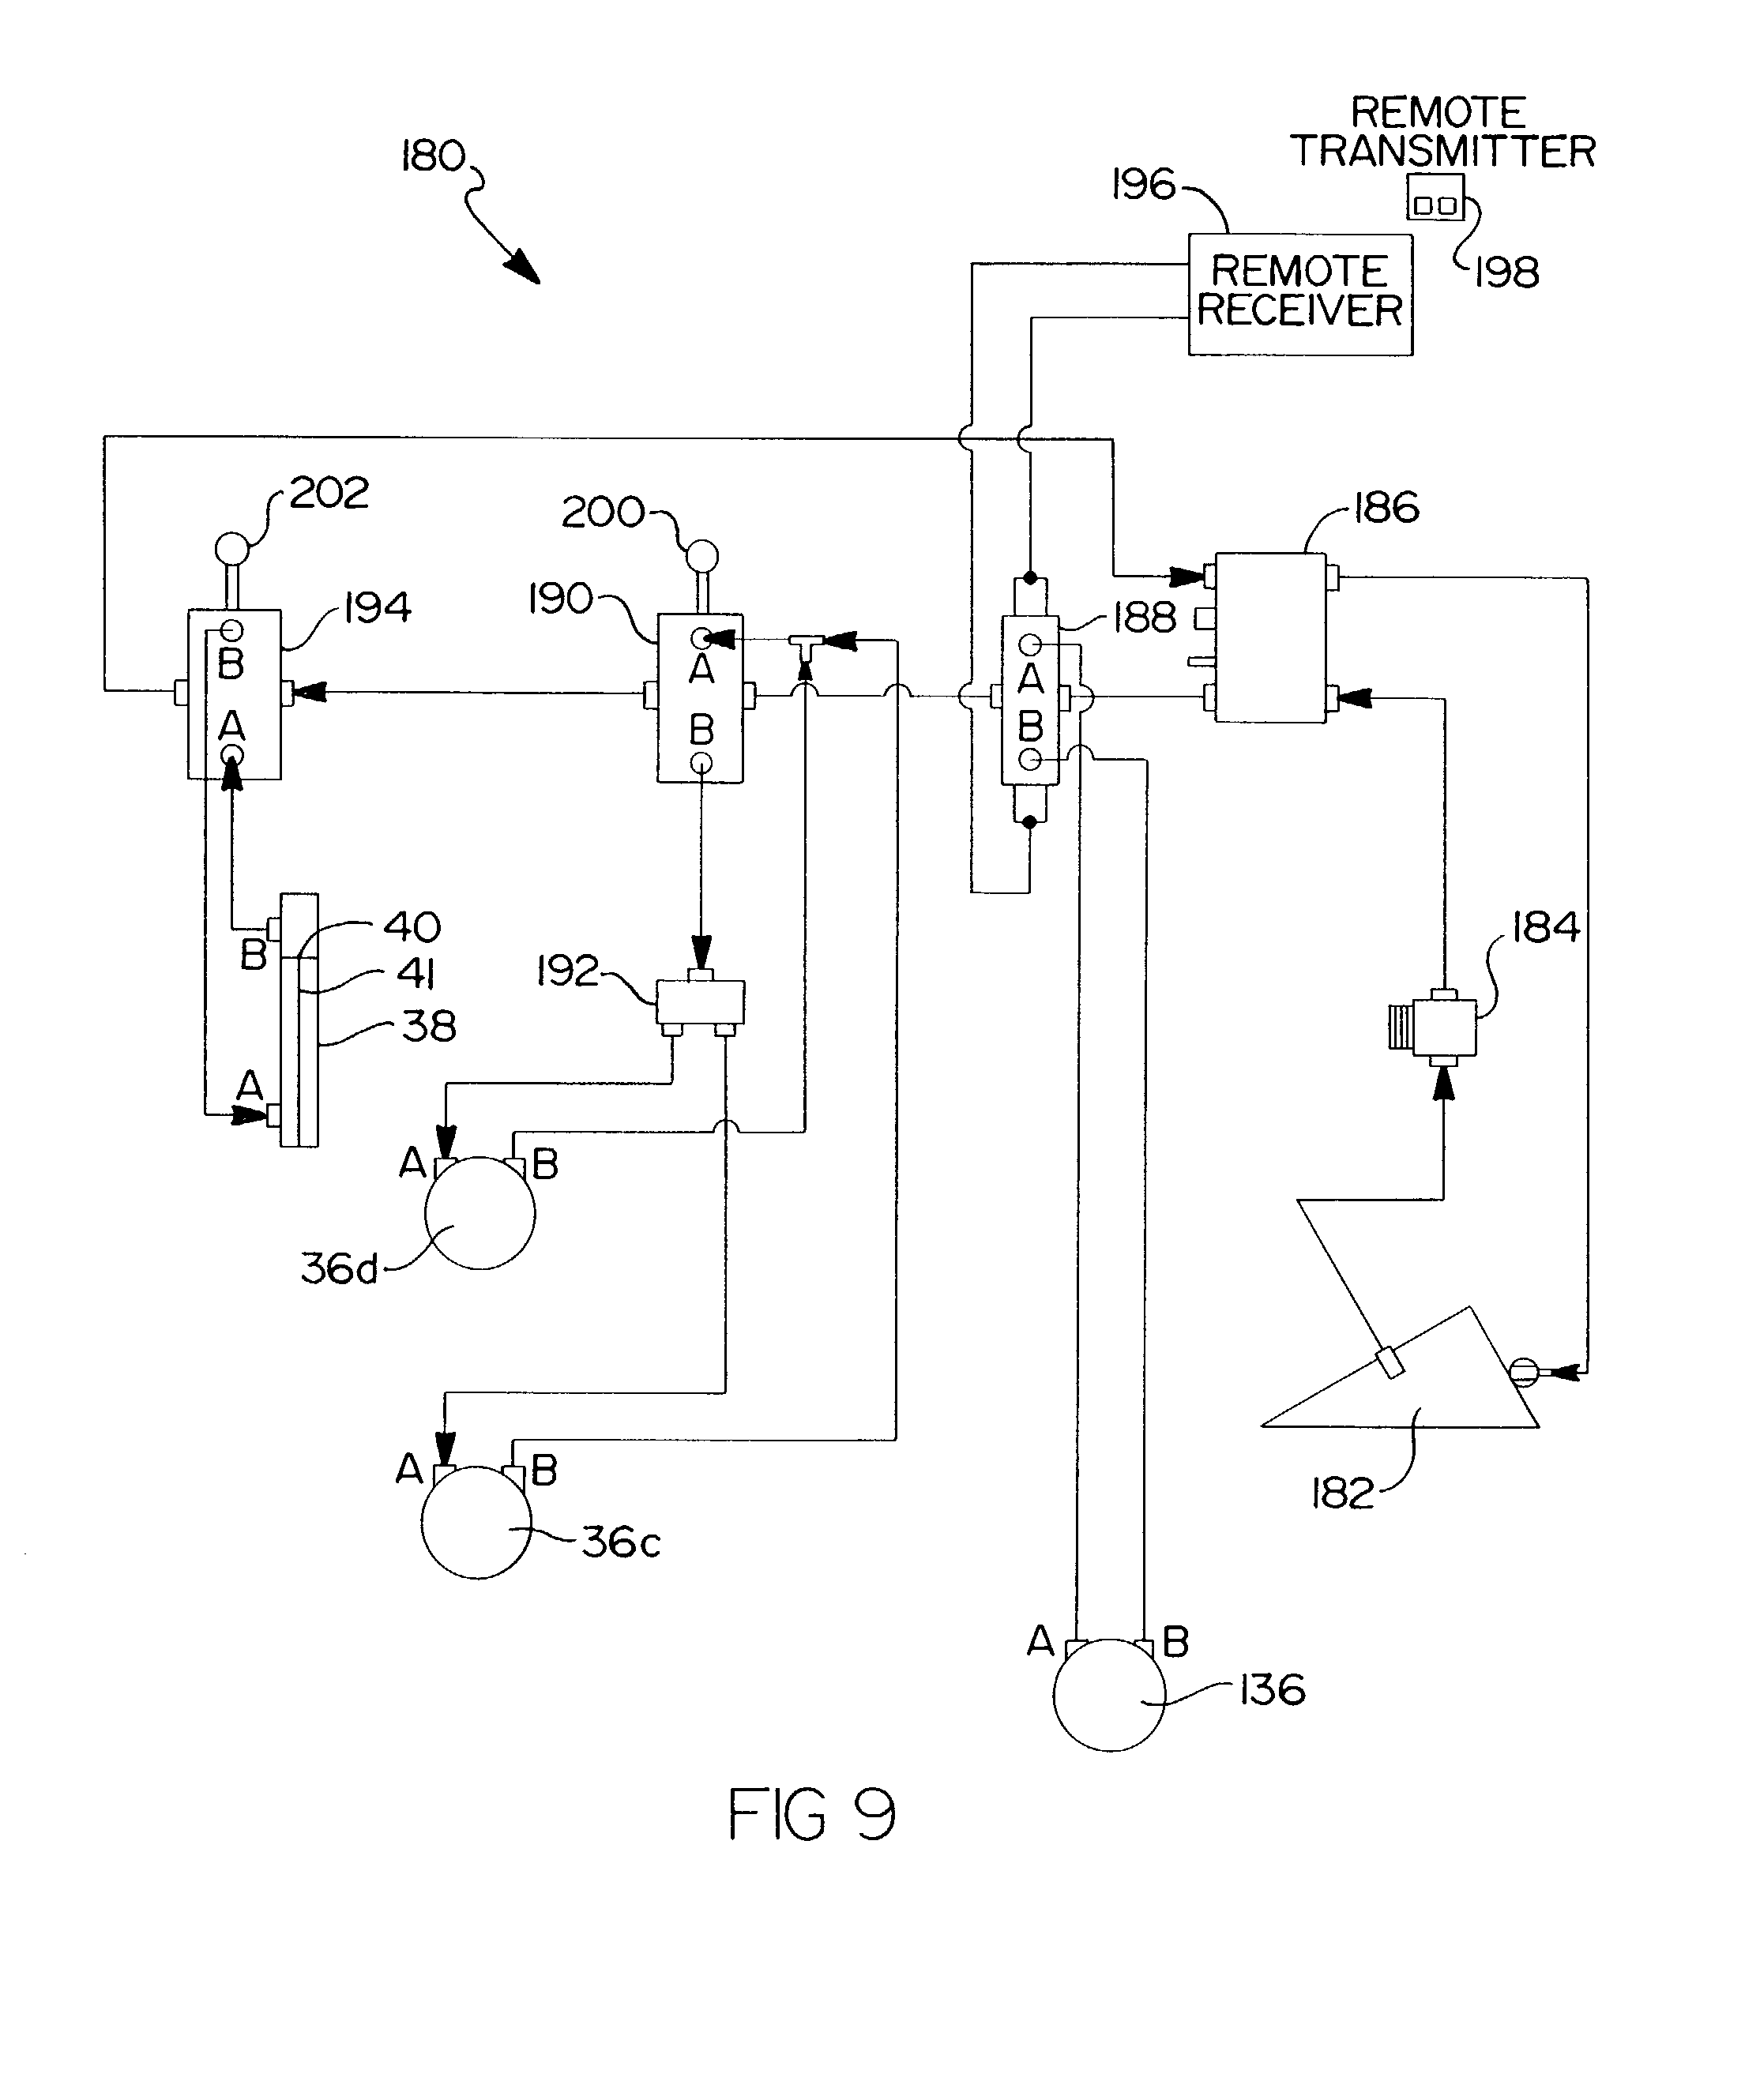 Patent Us6955310 - Remote Control Assembly For Wood Chipper